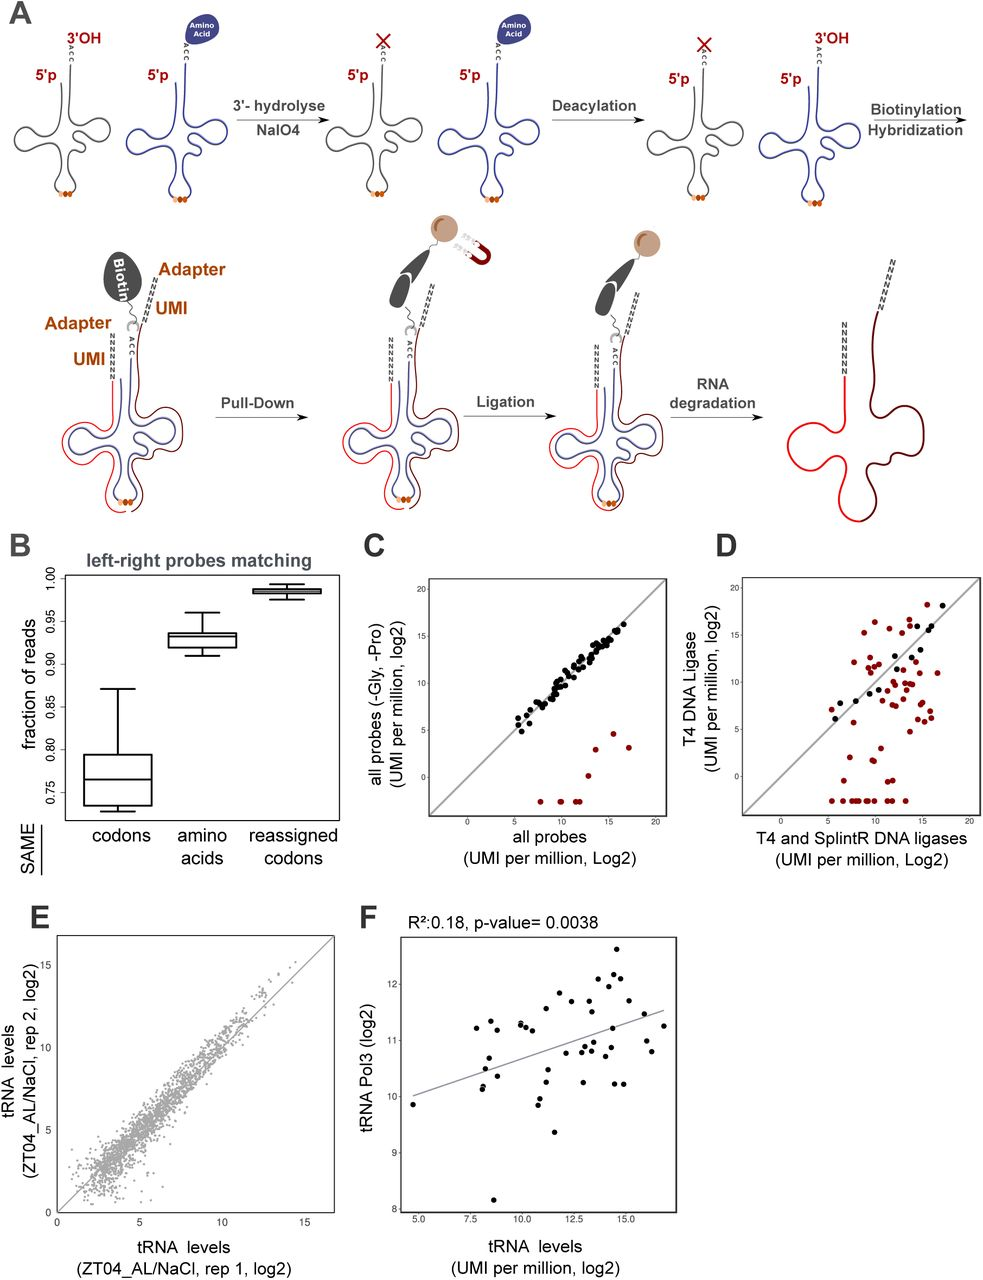 Landscapes of ribosome dwell times and relationship with